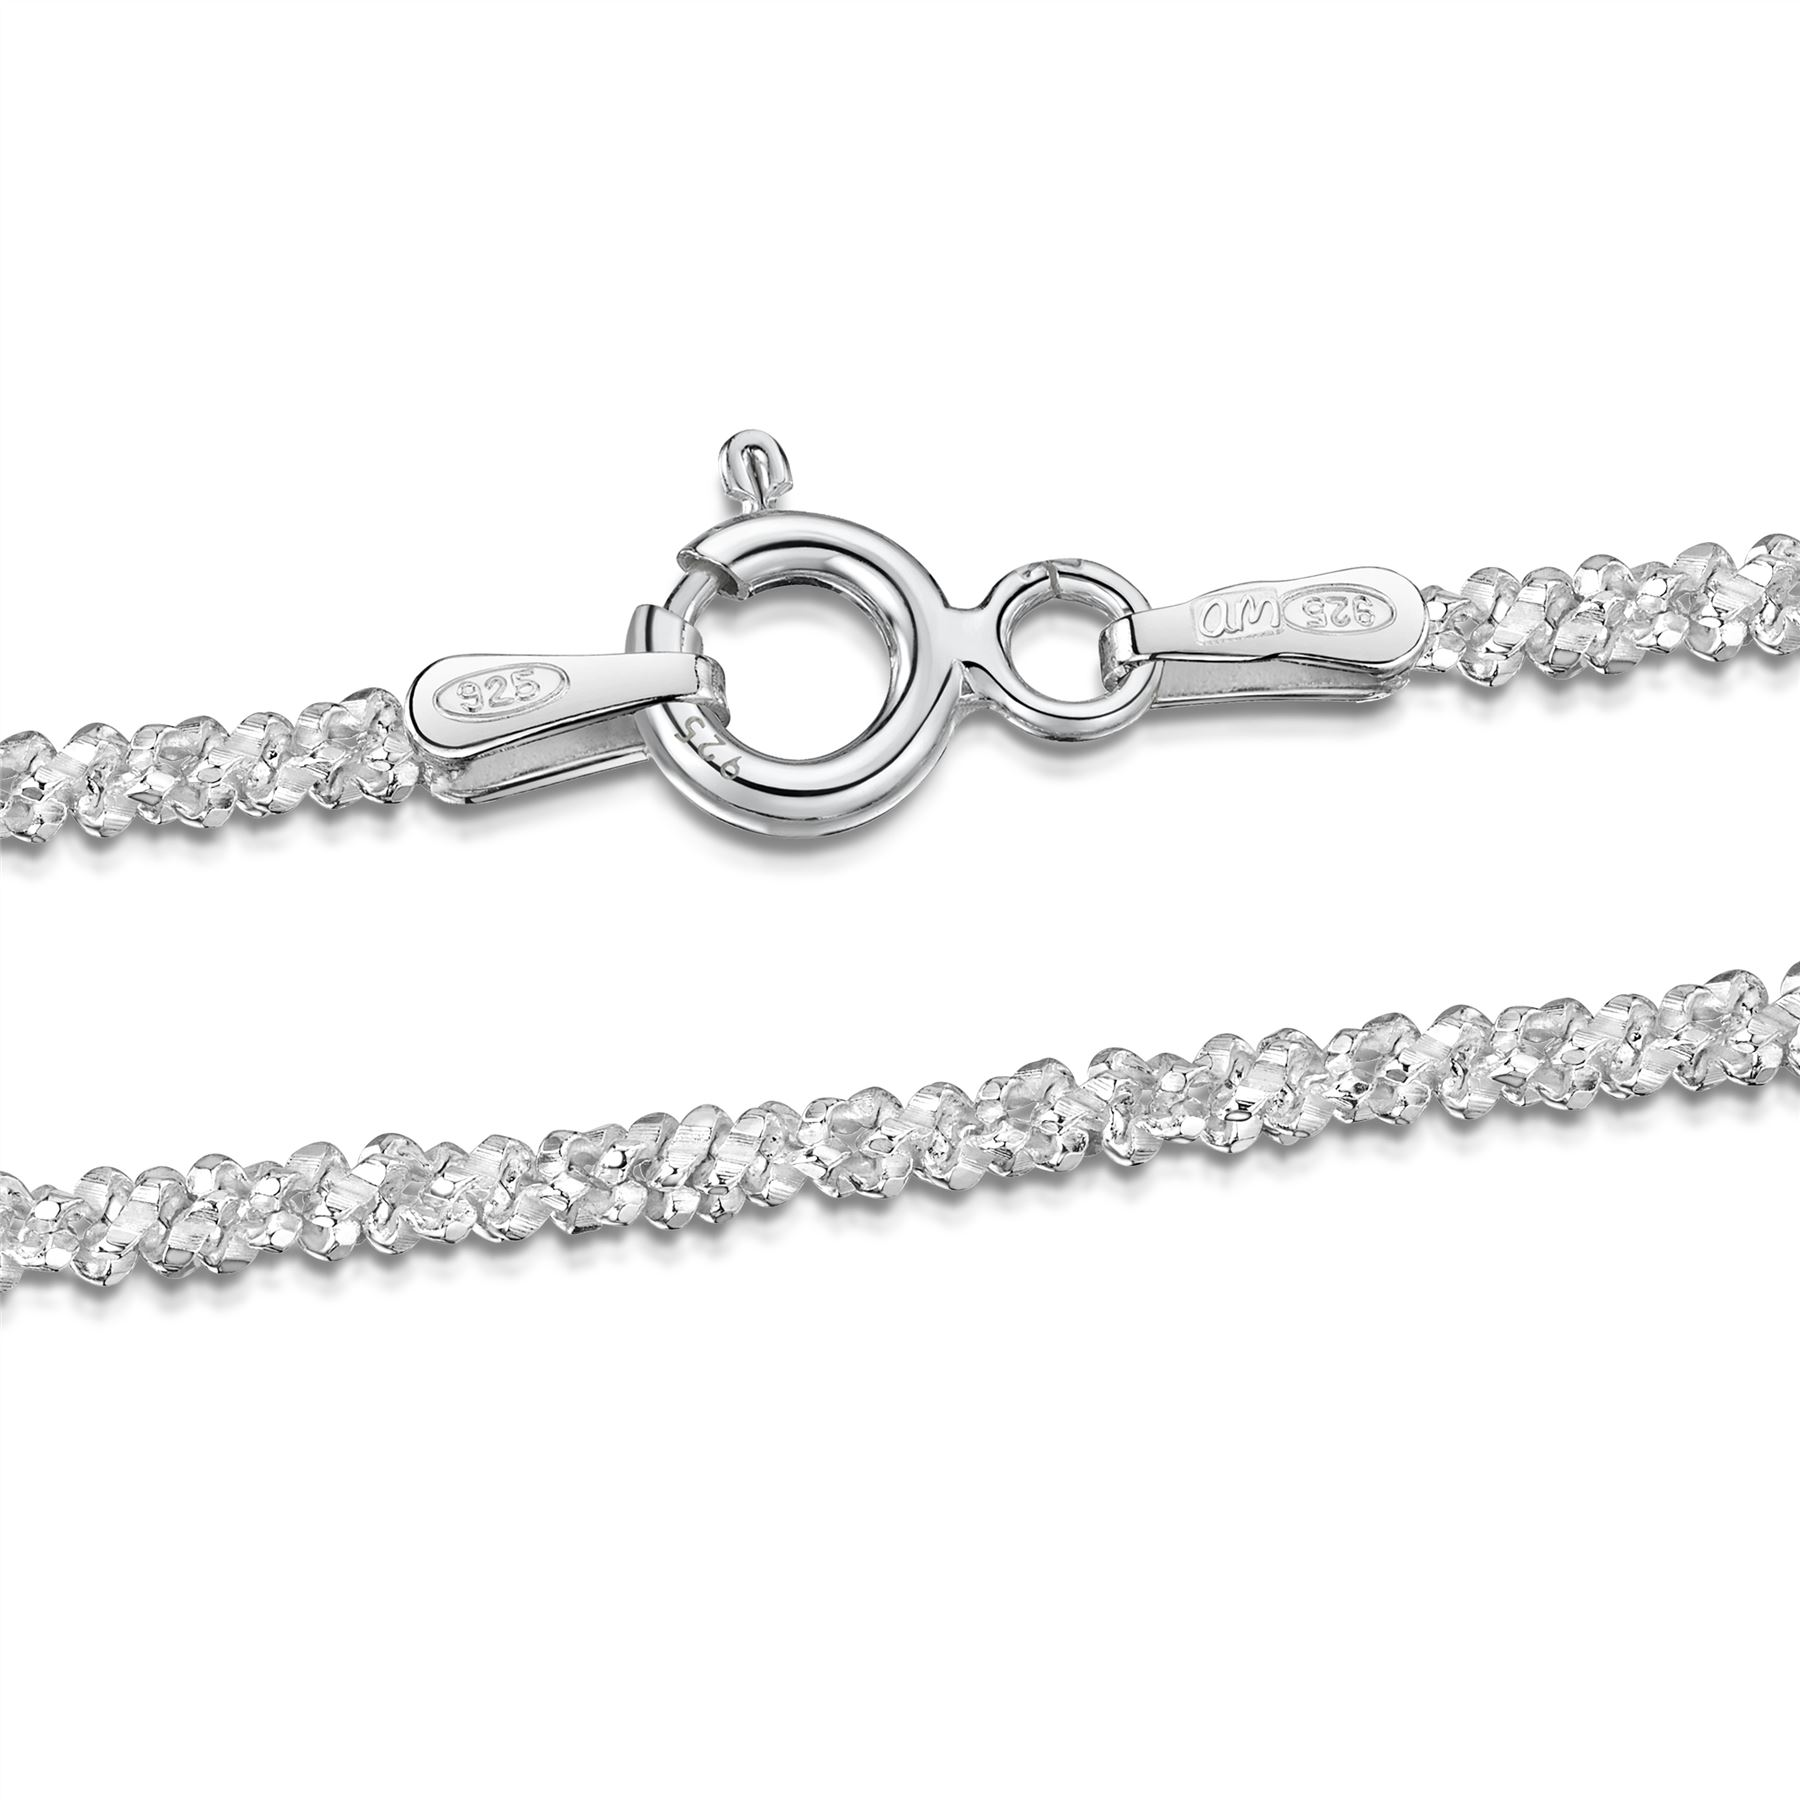 Amberta-Jewelry-Genuine-925-Sterling-Silver-Bracelet-Bangle-Chain-Made-in-Italy thumbnail 54